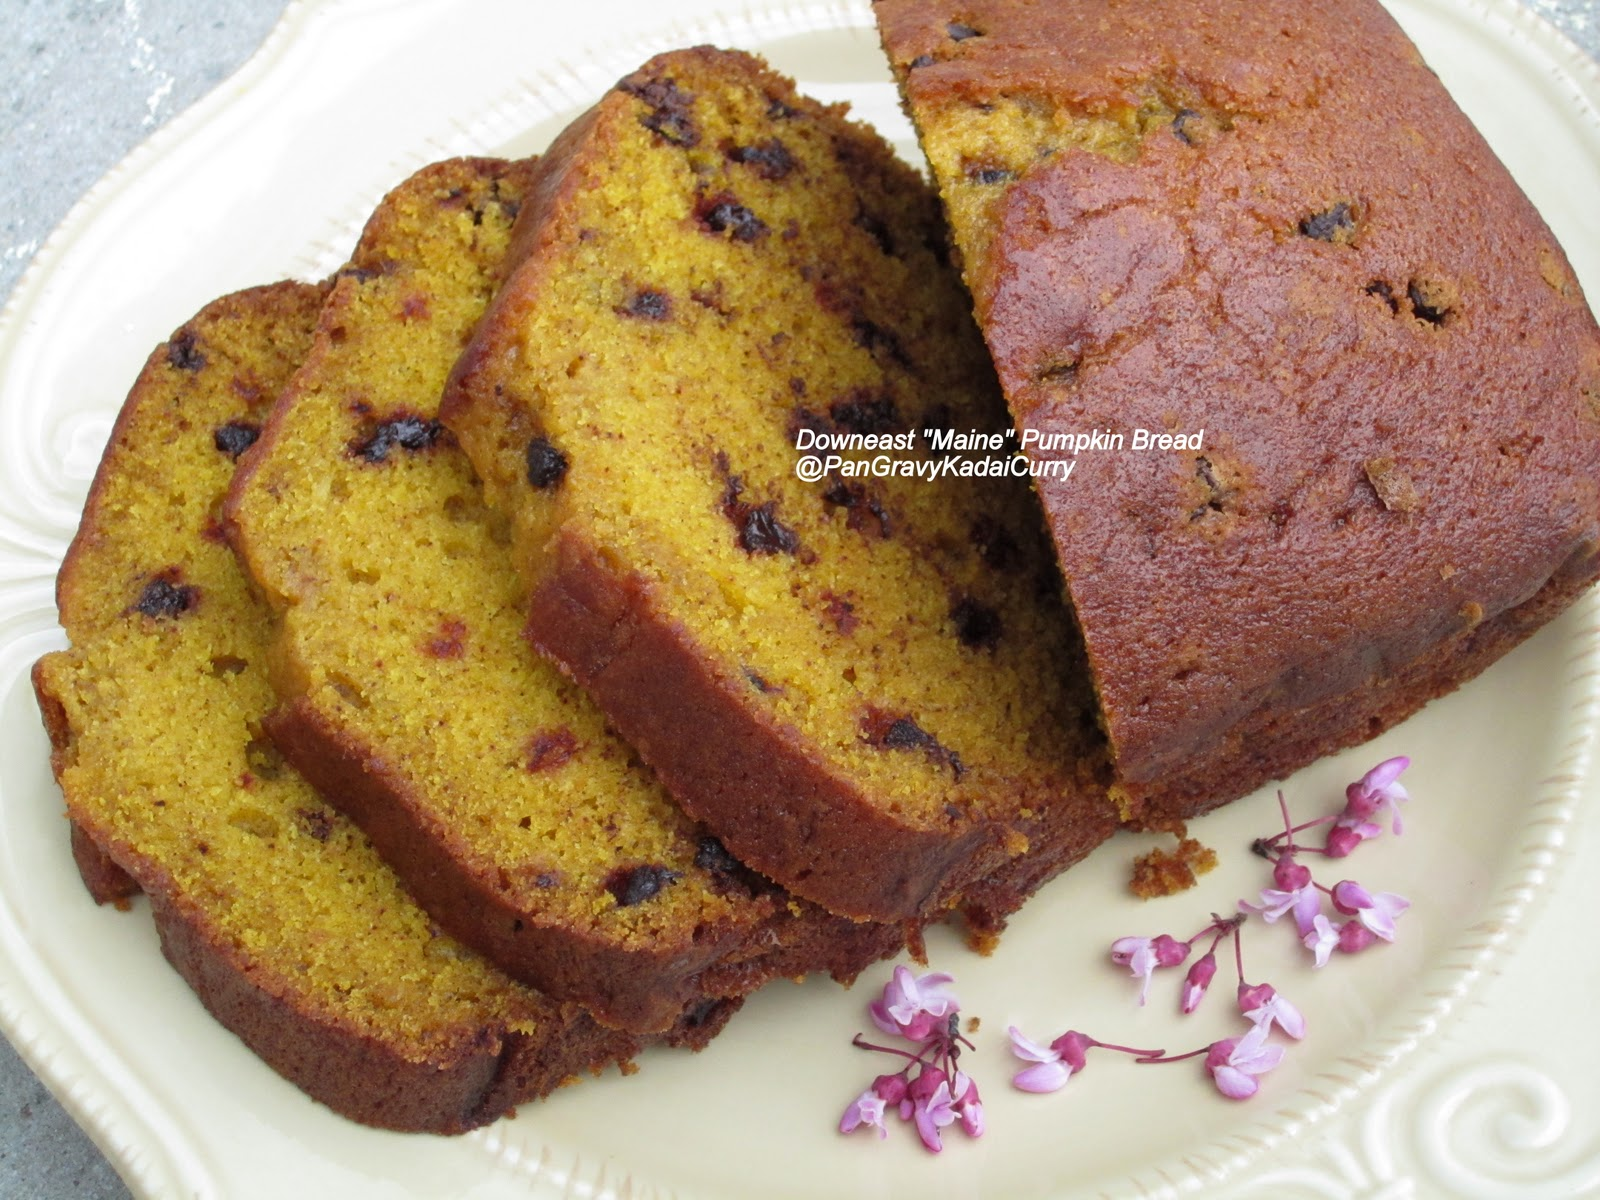 "... Gravy Kadai Curry: Downeast ""Maine"" Pumpkin Bread with Chocolat..."